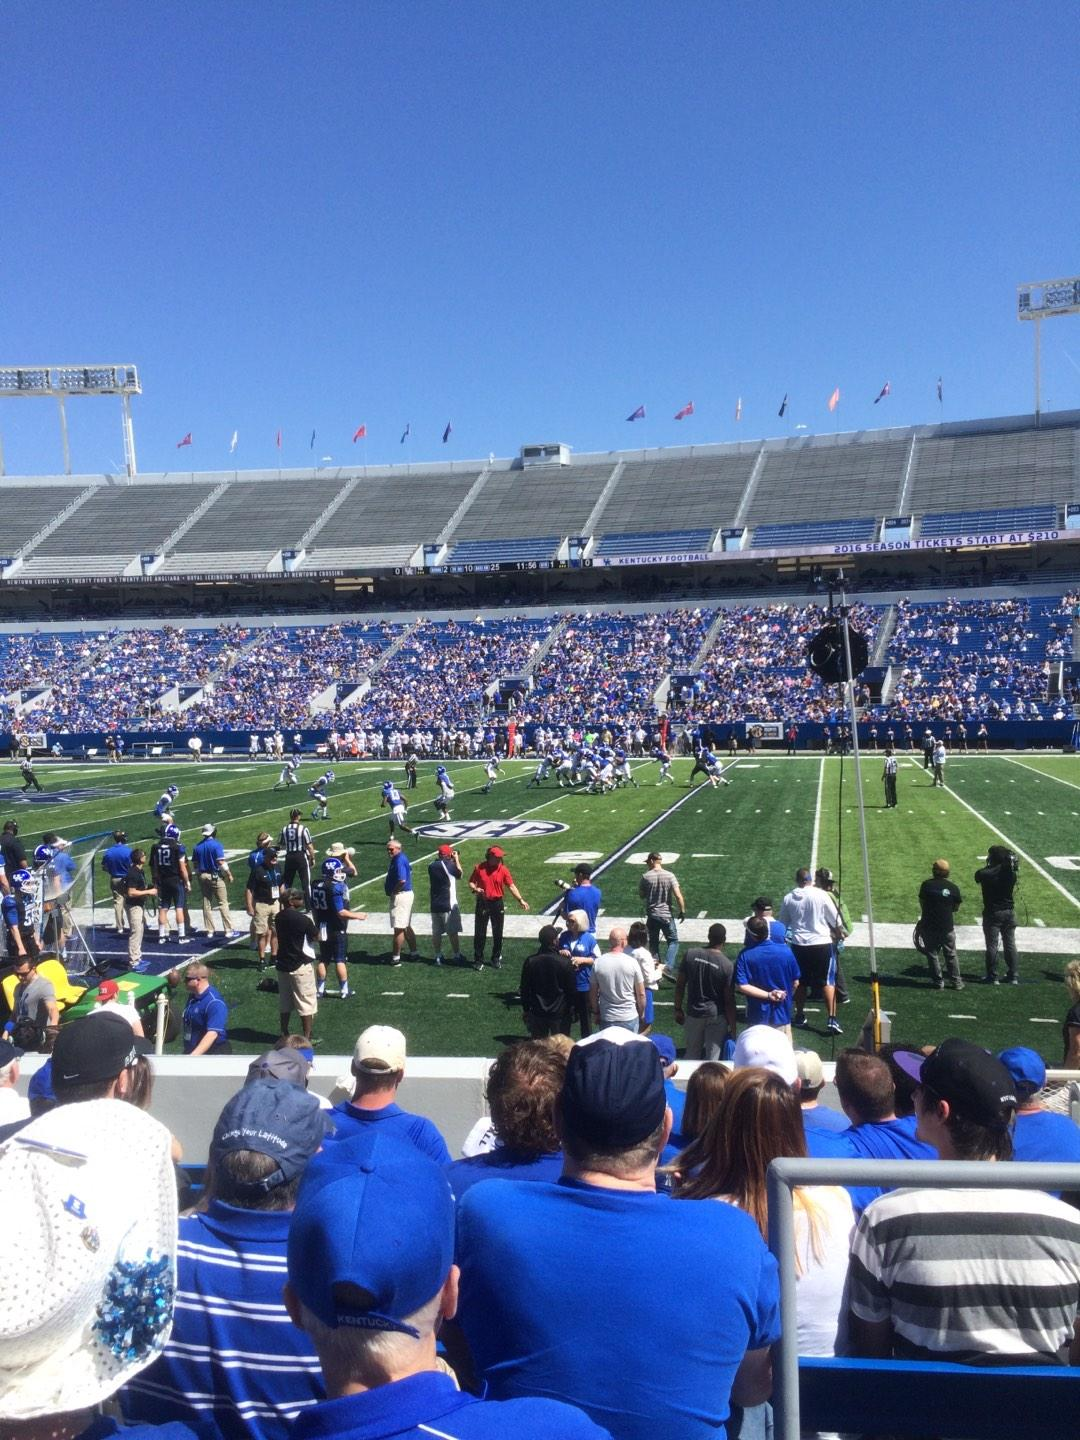 Kroger Field Section 28 Row 10 Seat 15